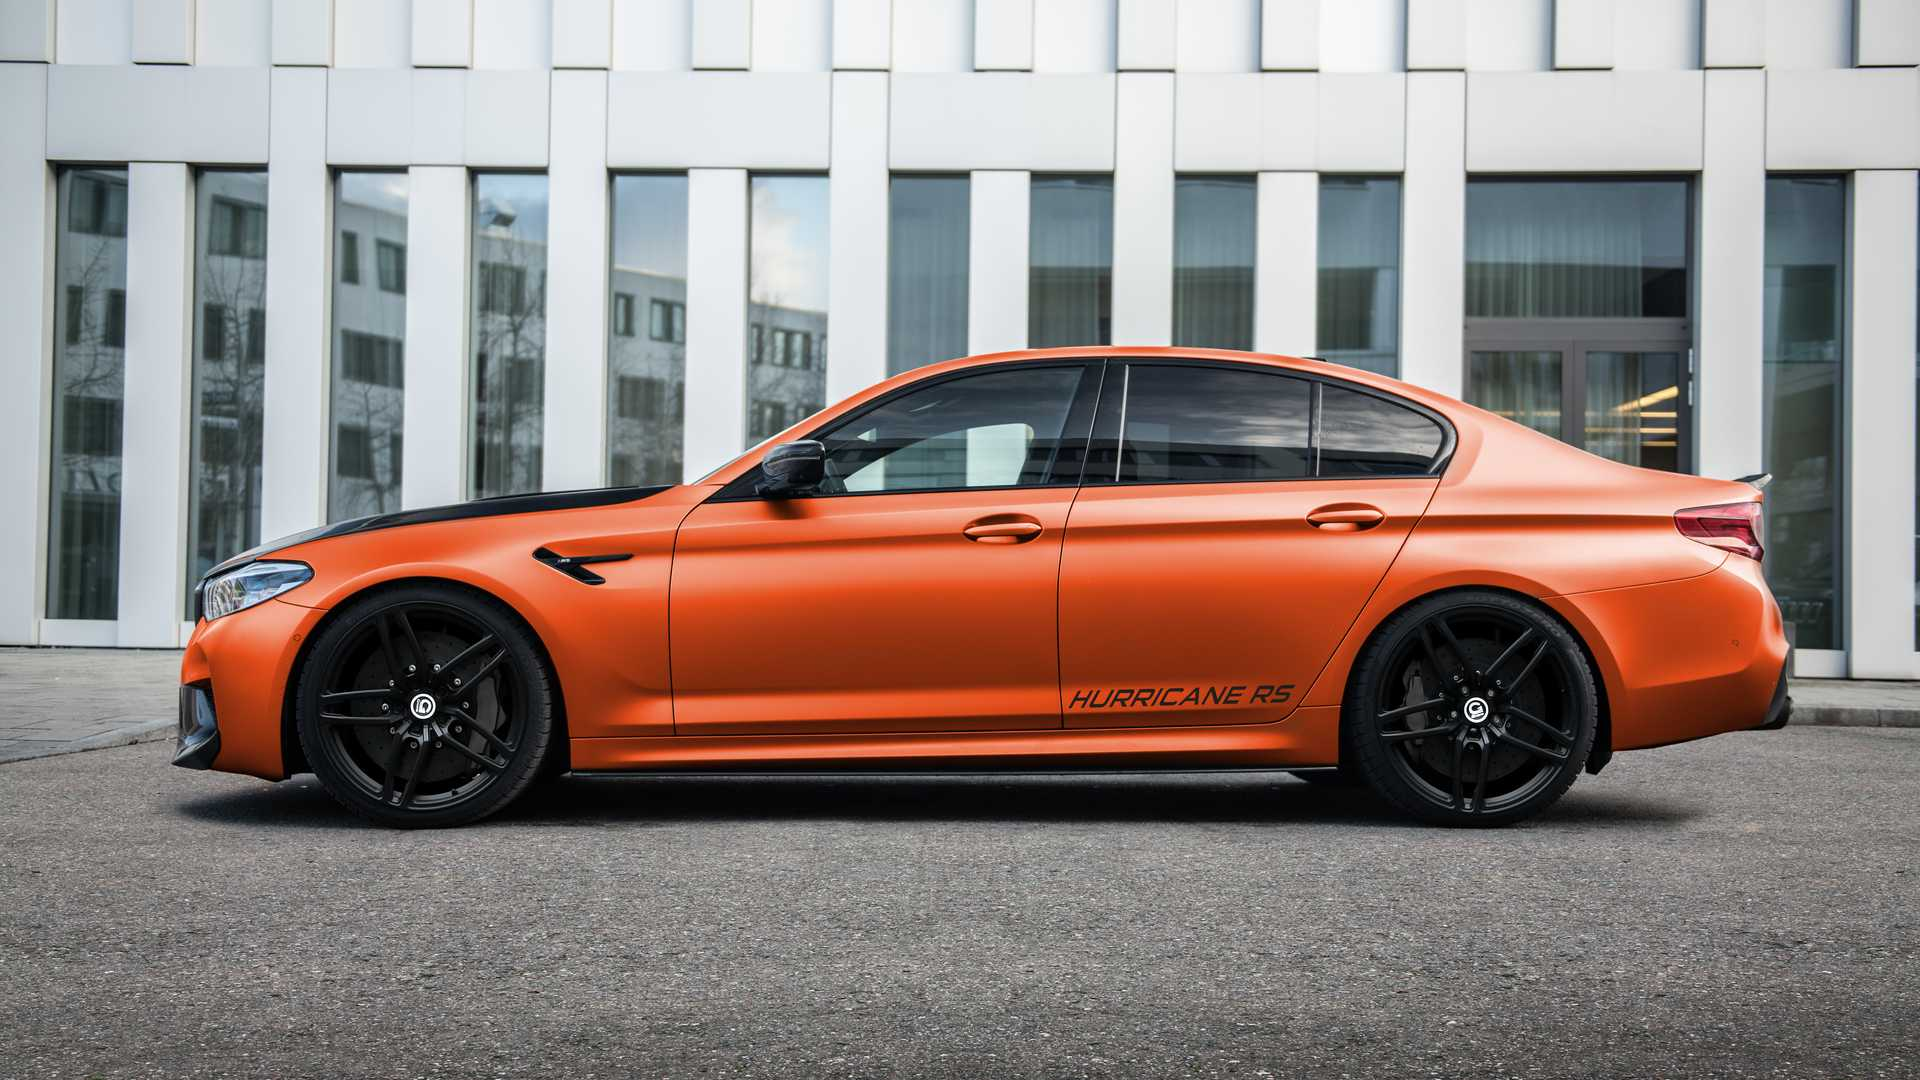 BMW-M5-Hurricane-RS-by-G-Power-4